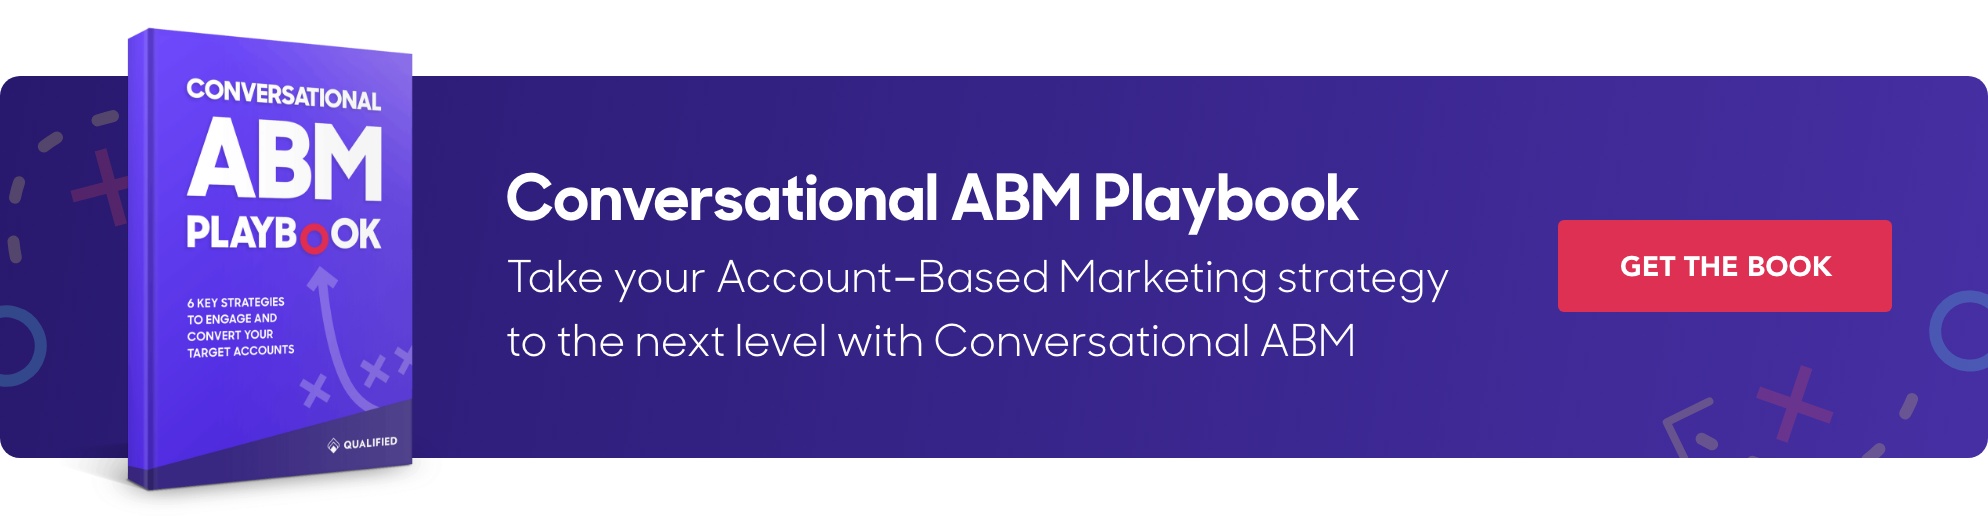 Take your account-based marketing strategy to the next level with the Conversational ABM ebook from Qualified